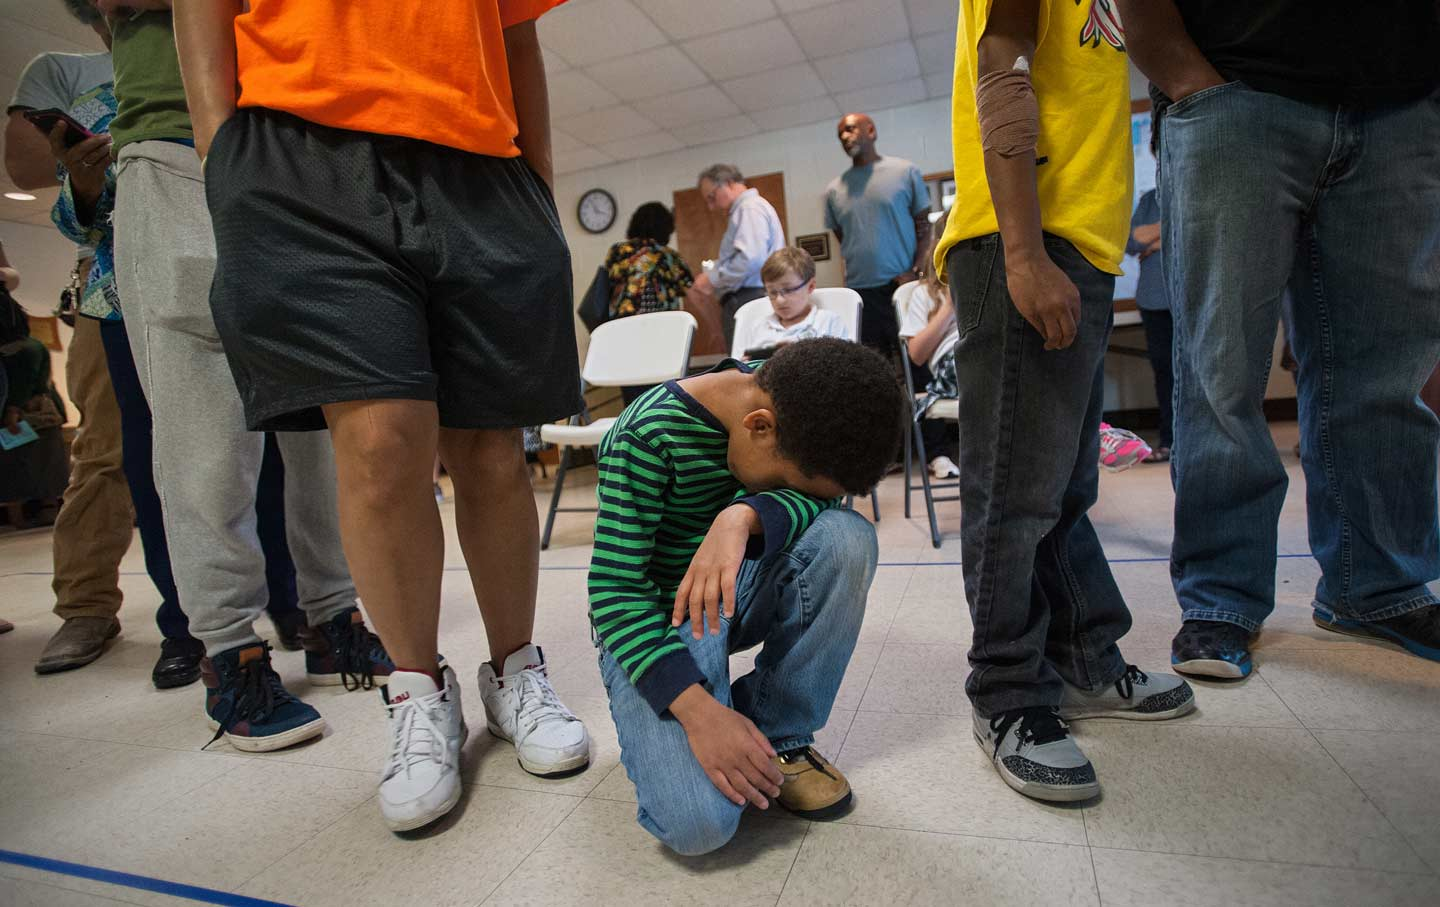 our addiction to elections is killing american democracy the nation brandon lee 7 waits in line his family as they prepare to vote at hope valley baptist church in durham north carolina on tuesday 15 2016